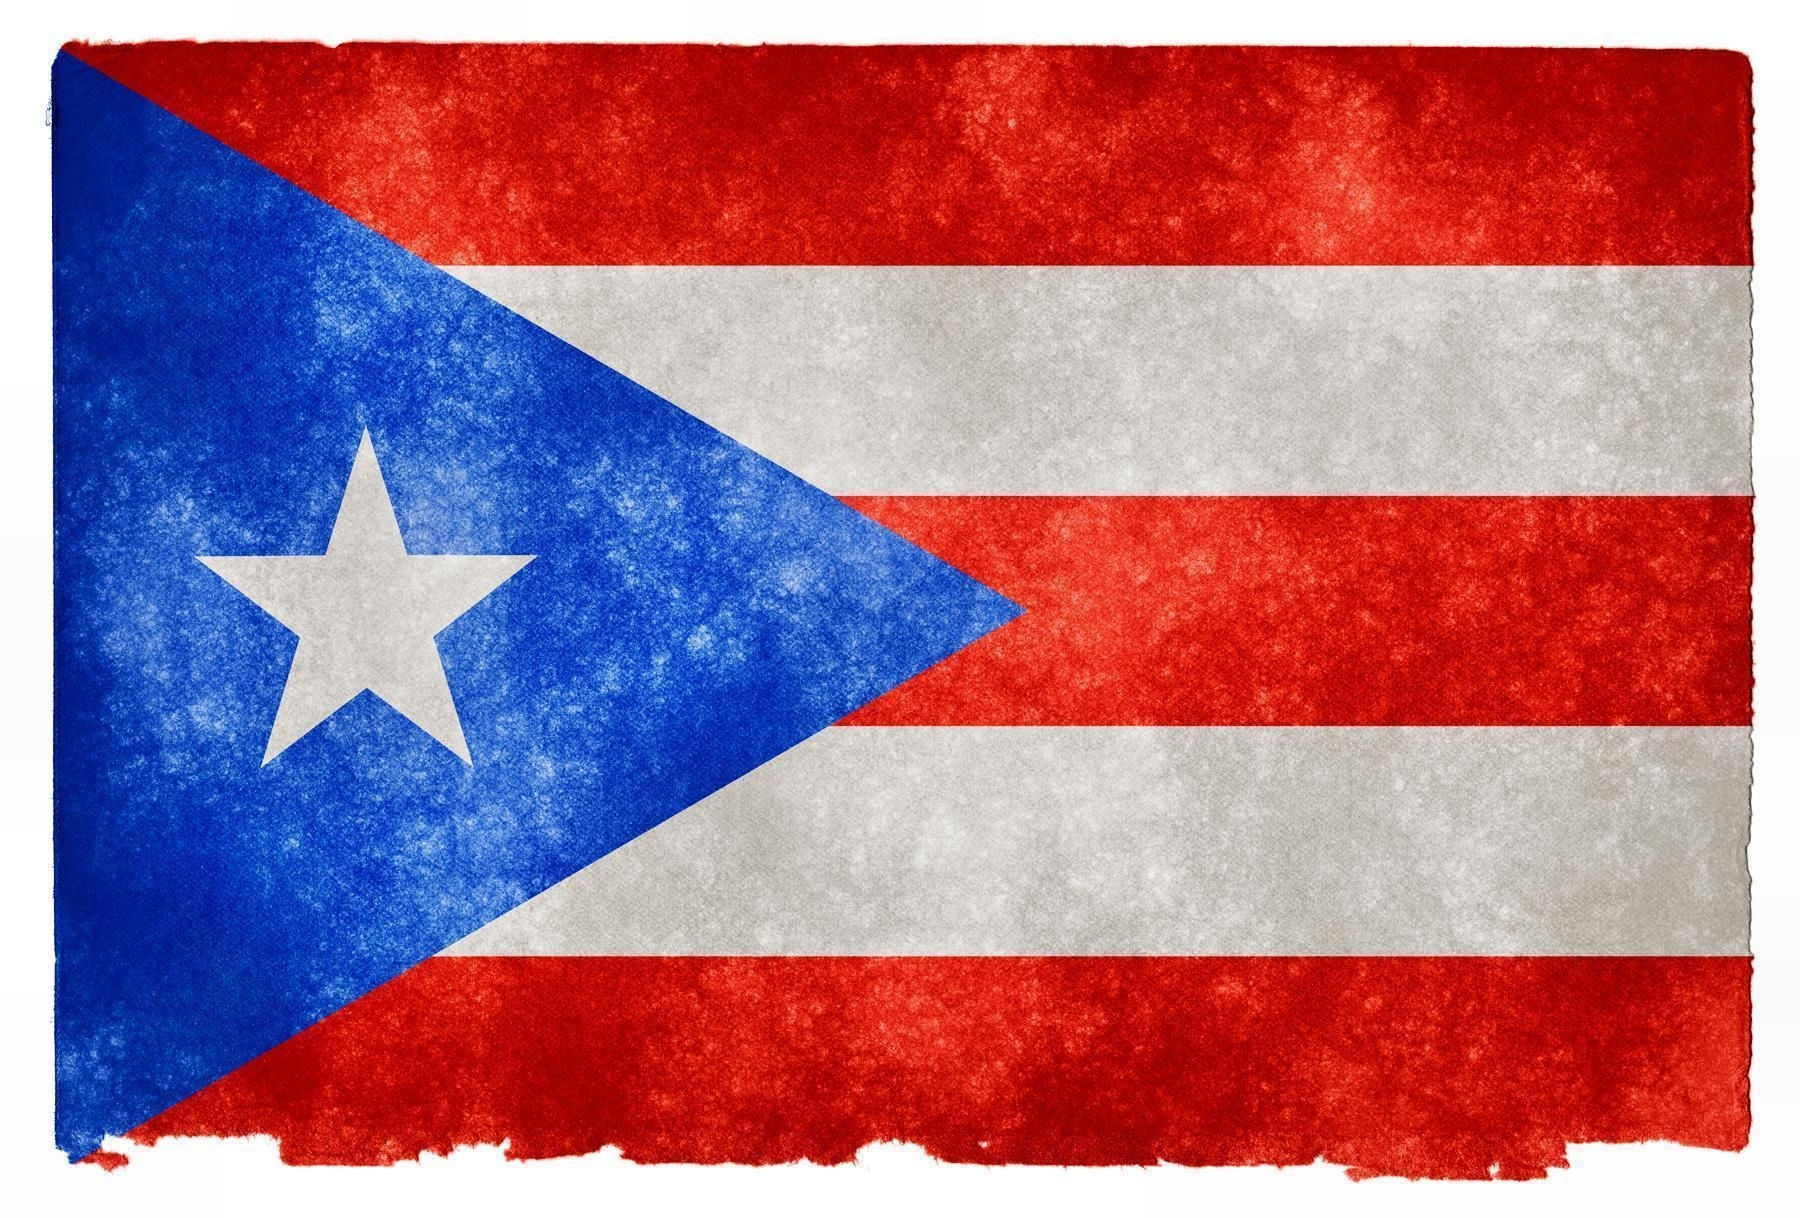 Title Free Puerto Rican Flag Wallpapers Wallpaper Cave Dimension 1800 X 1218 File Type JPG JPEG